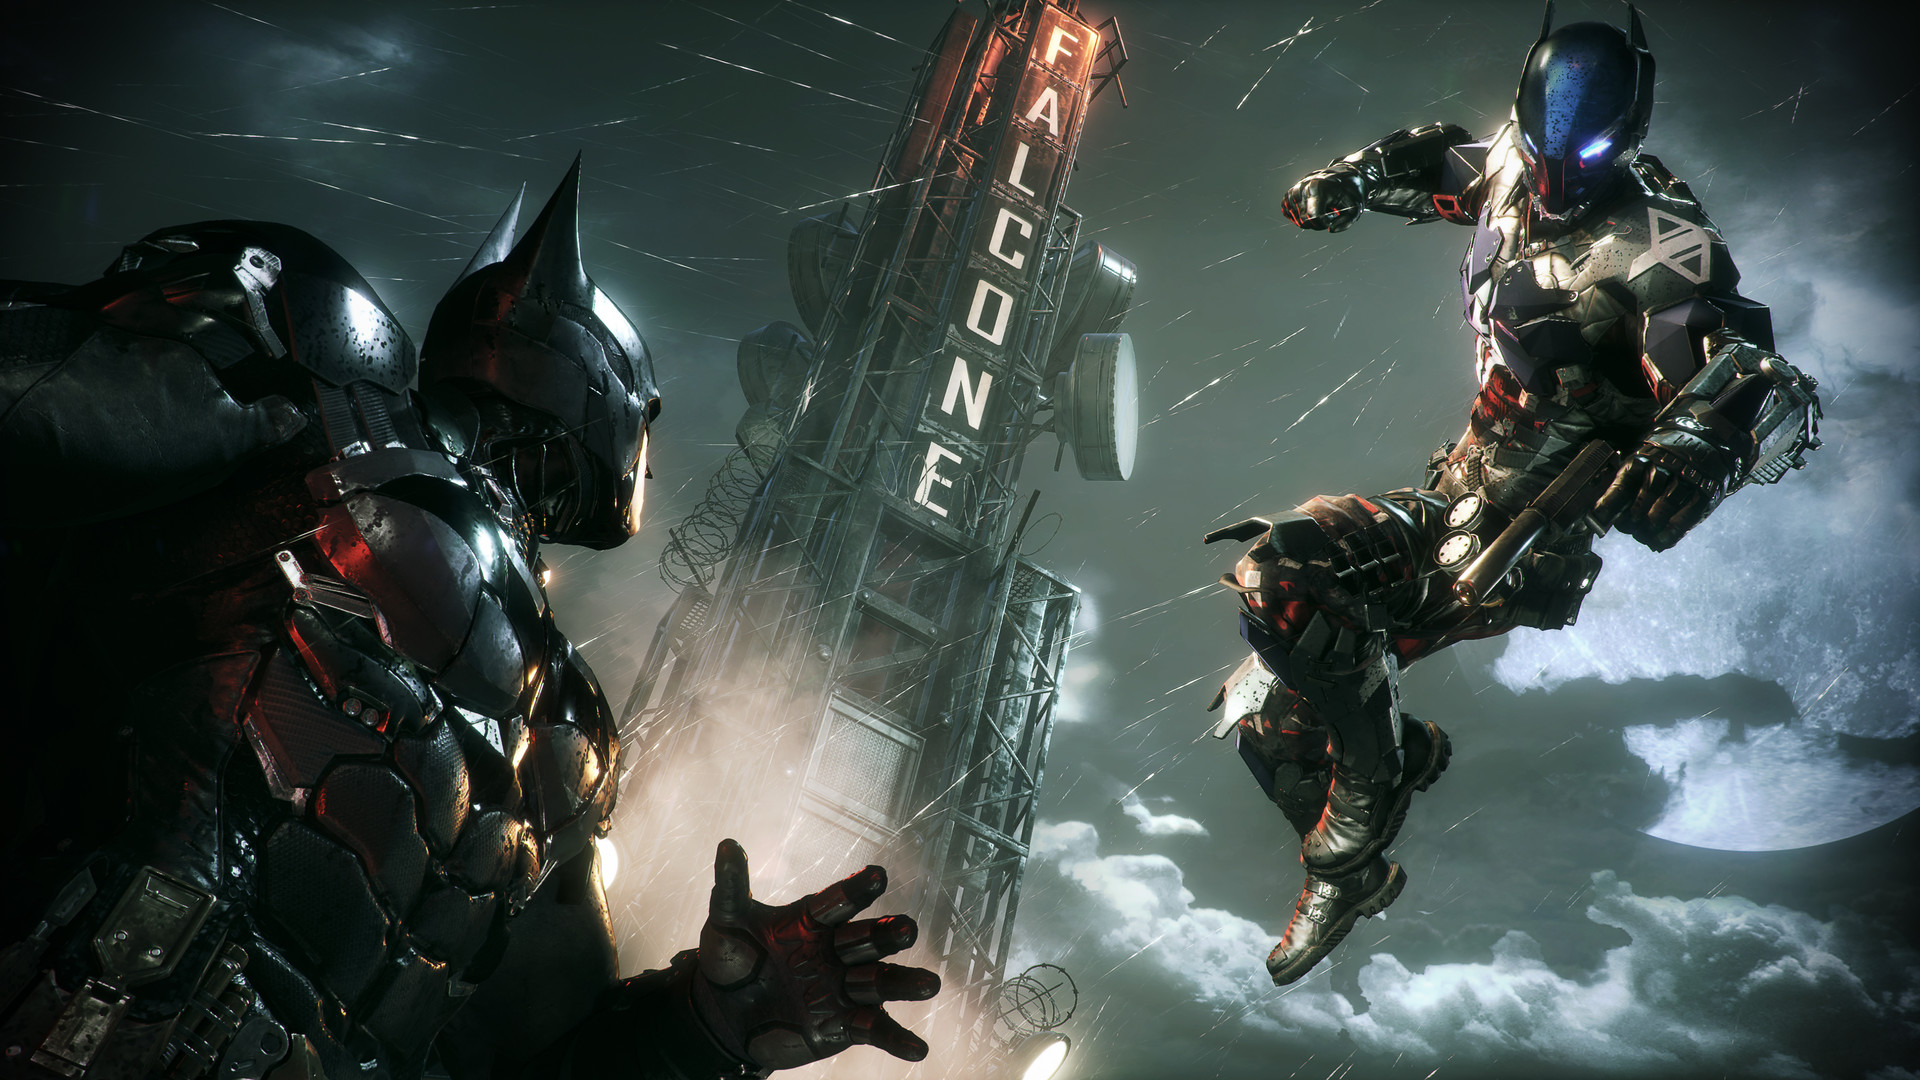 free download batman arkham knight premium edition - cpy latest update include dlcs and updates dlc global cd key free for pc ps4 playstation 3 xbox one 360 copiapop diskokosmiko